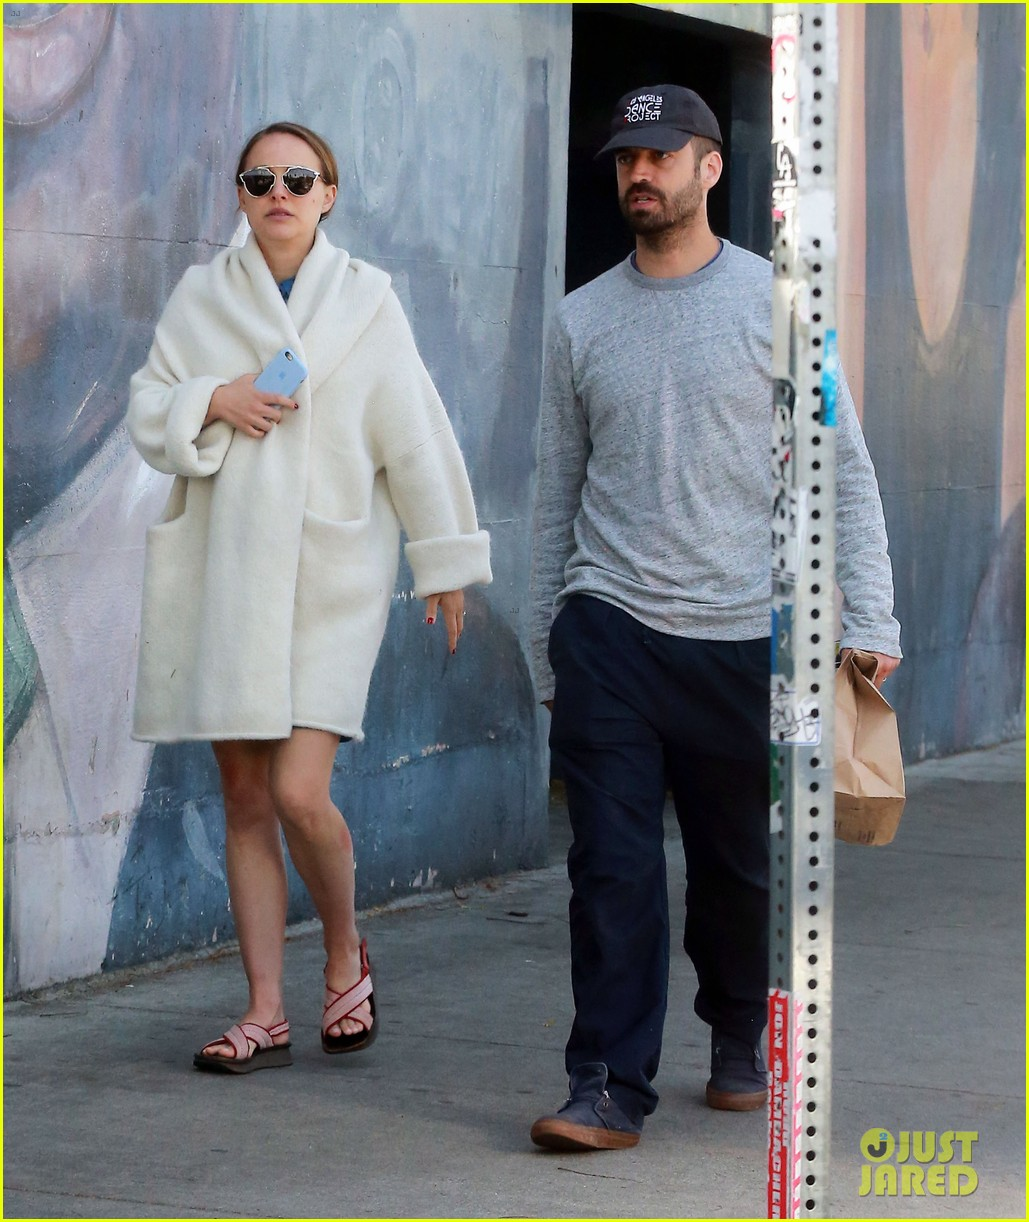 natalie portman and benjamin billepied grab lunch sans daughter amalia 053885600